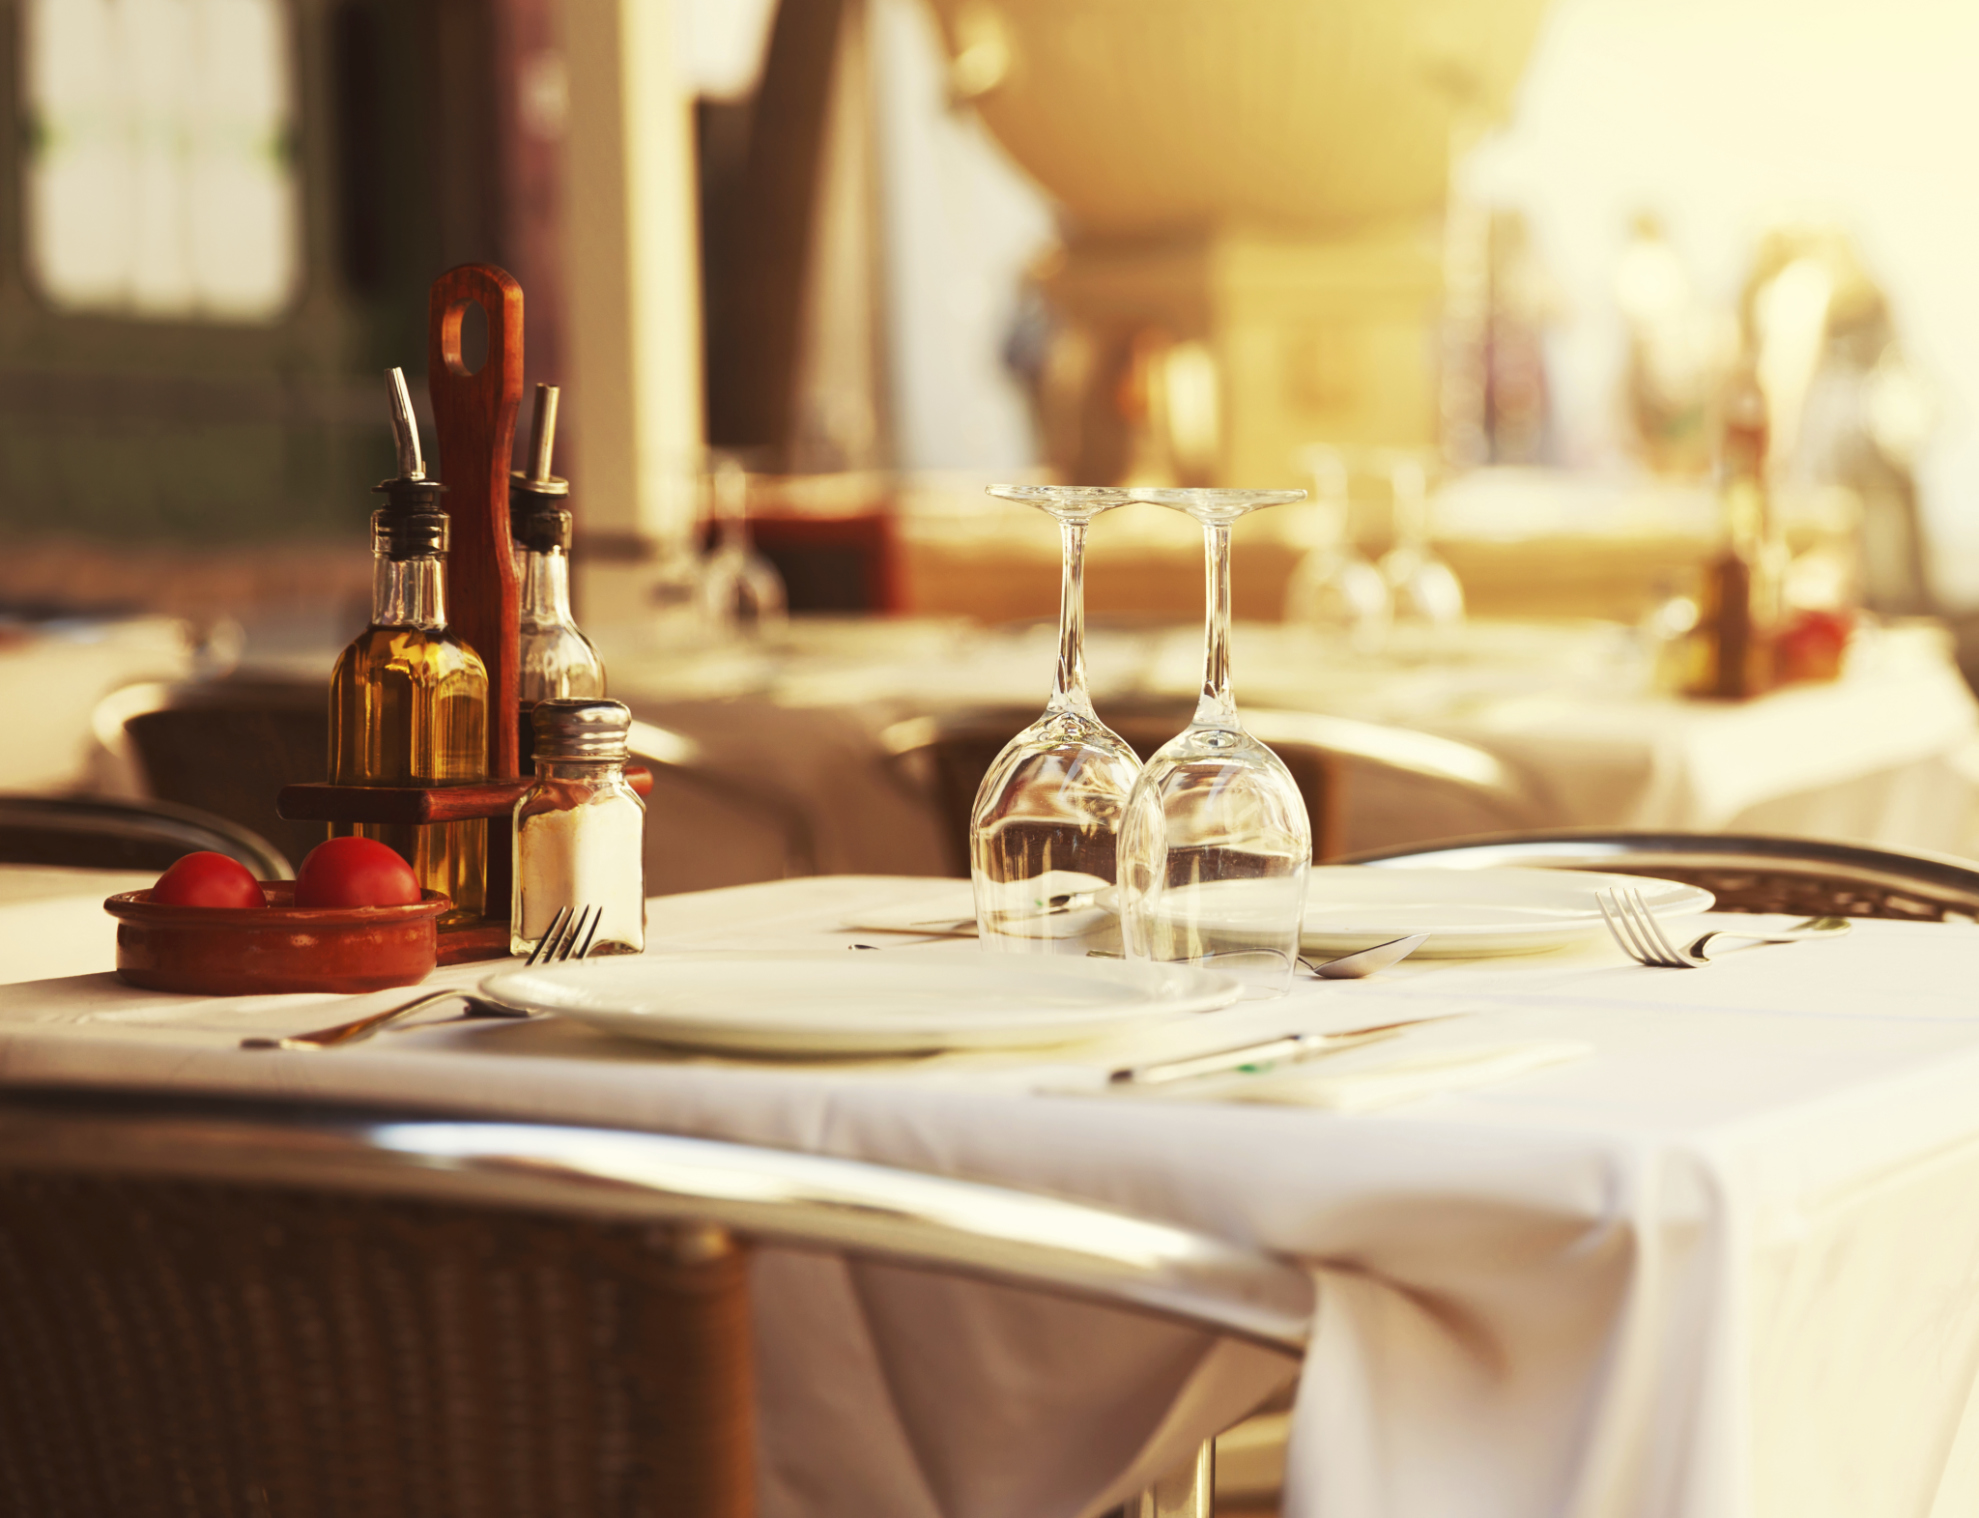 Enjoy delicious food at the best restaurants in Brian Head